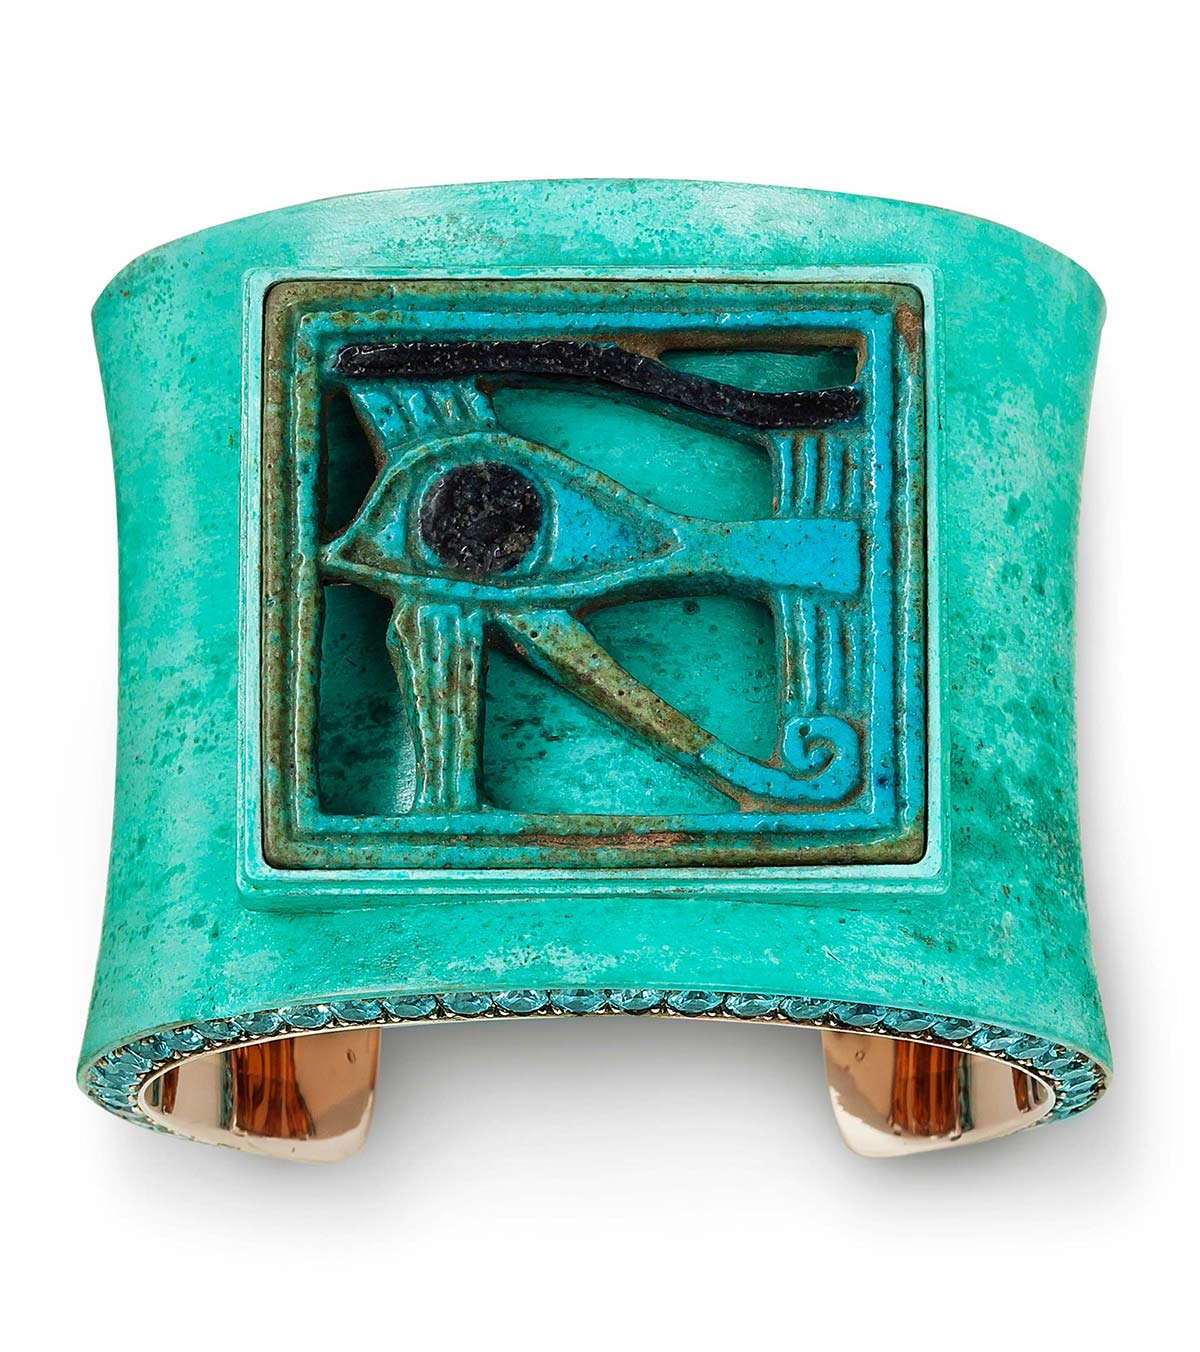 Tefaf Maastricht 2019: Hemmerle 'Eye of Horus' bangle, Ancient Egyptian faience, zircons, bronze and white gold, courtesy Hemmerle